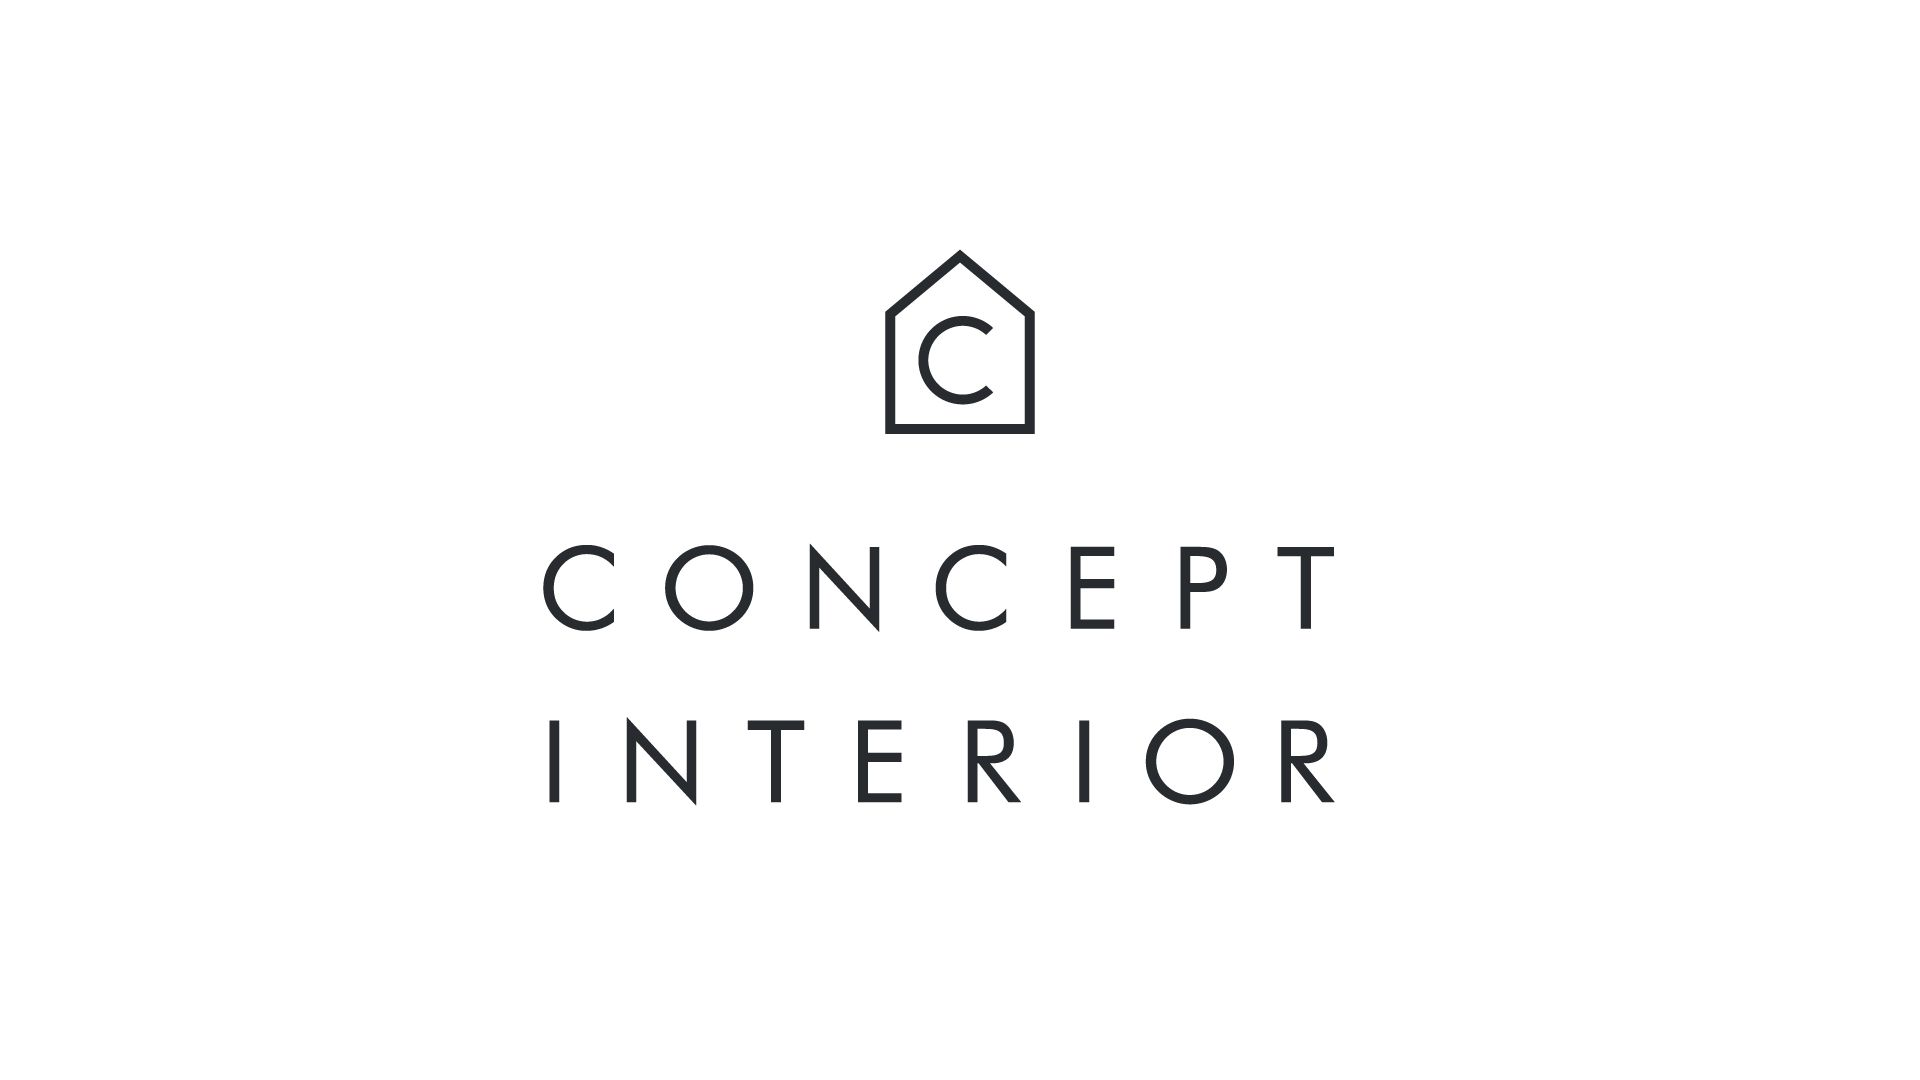 Interior design company logos home design ideas for Home interiors logo